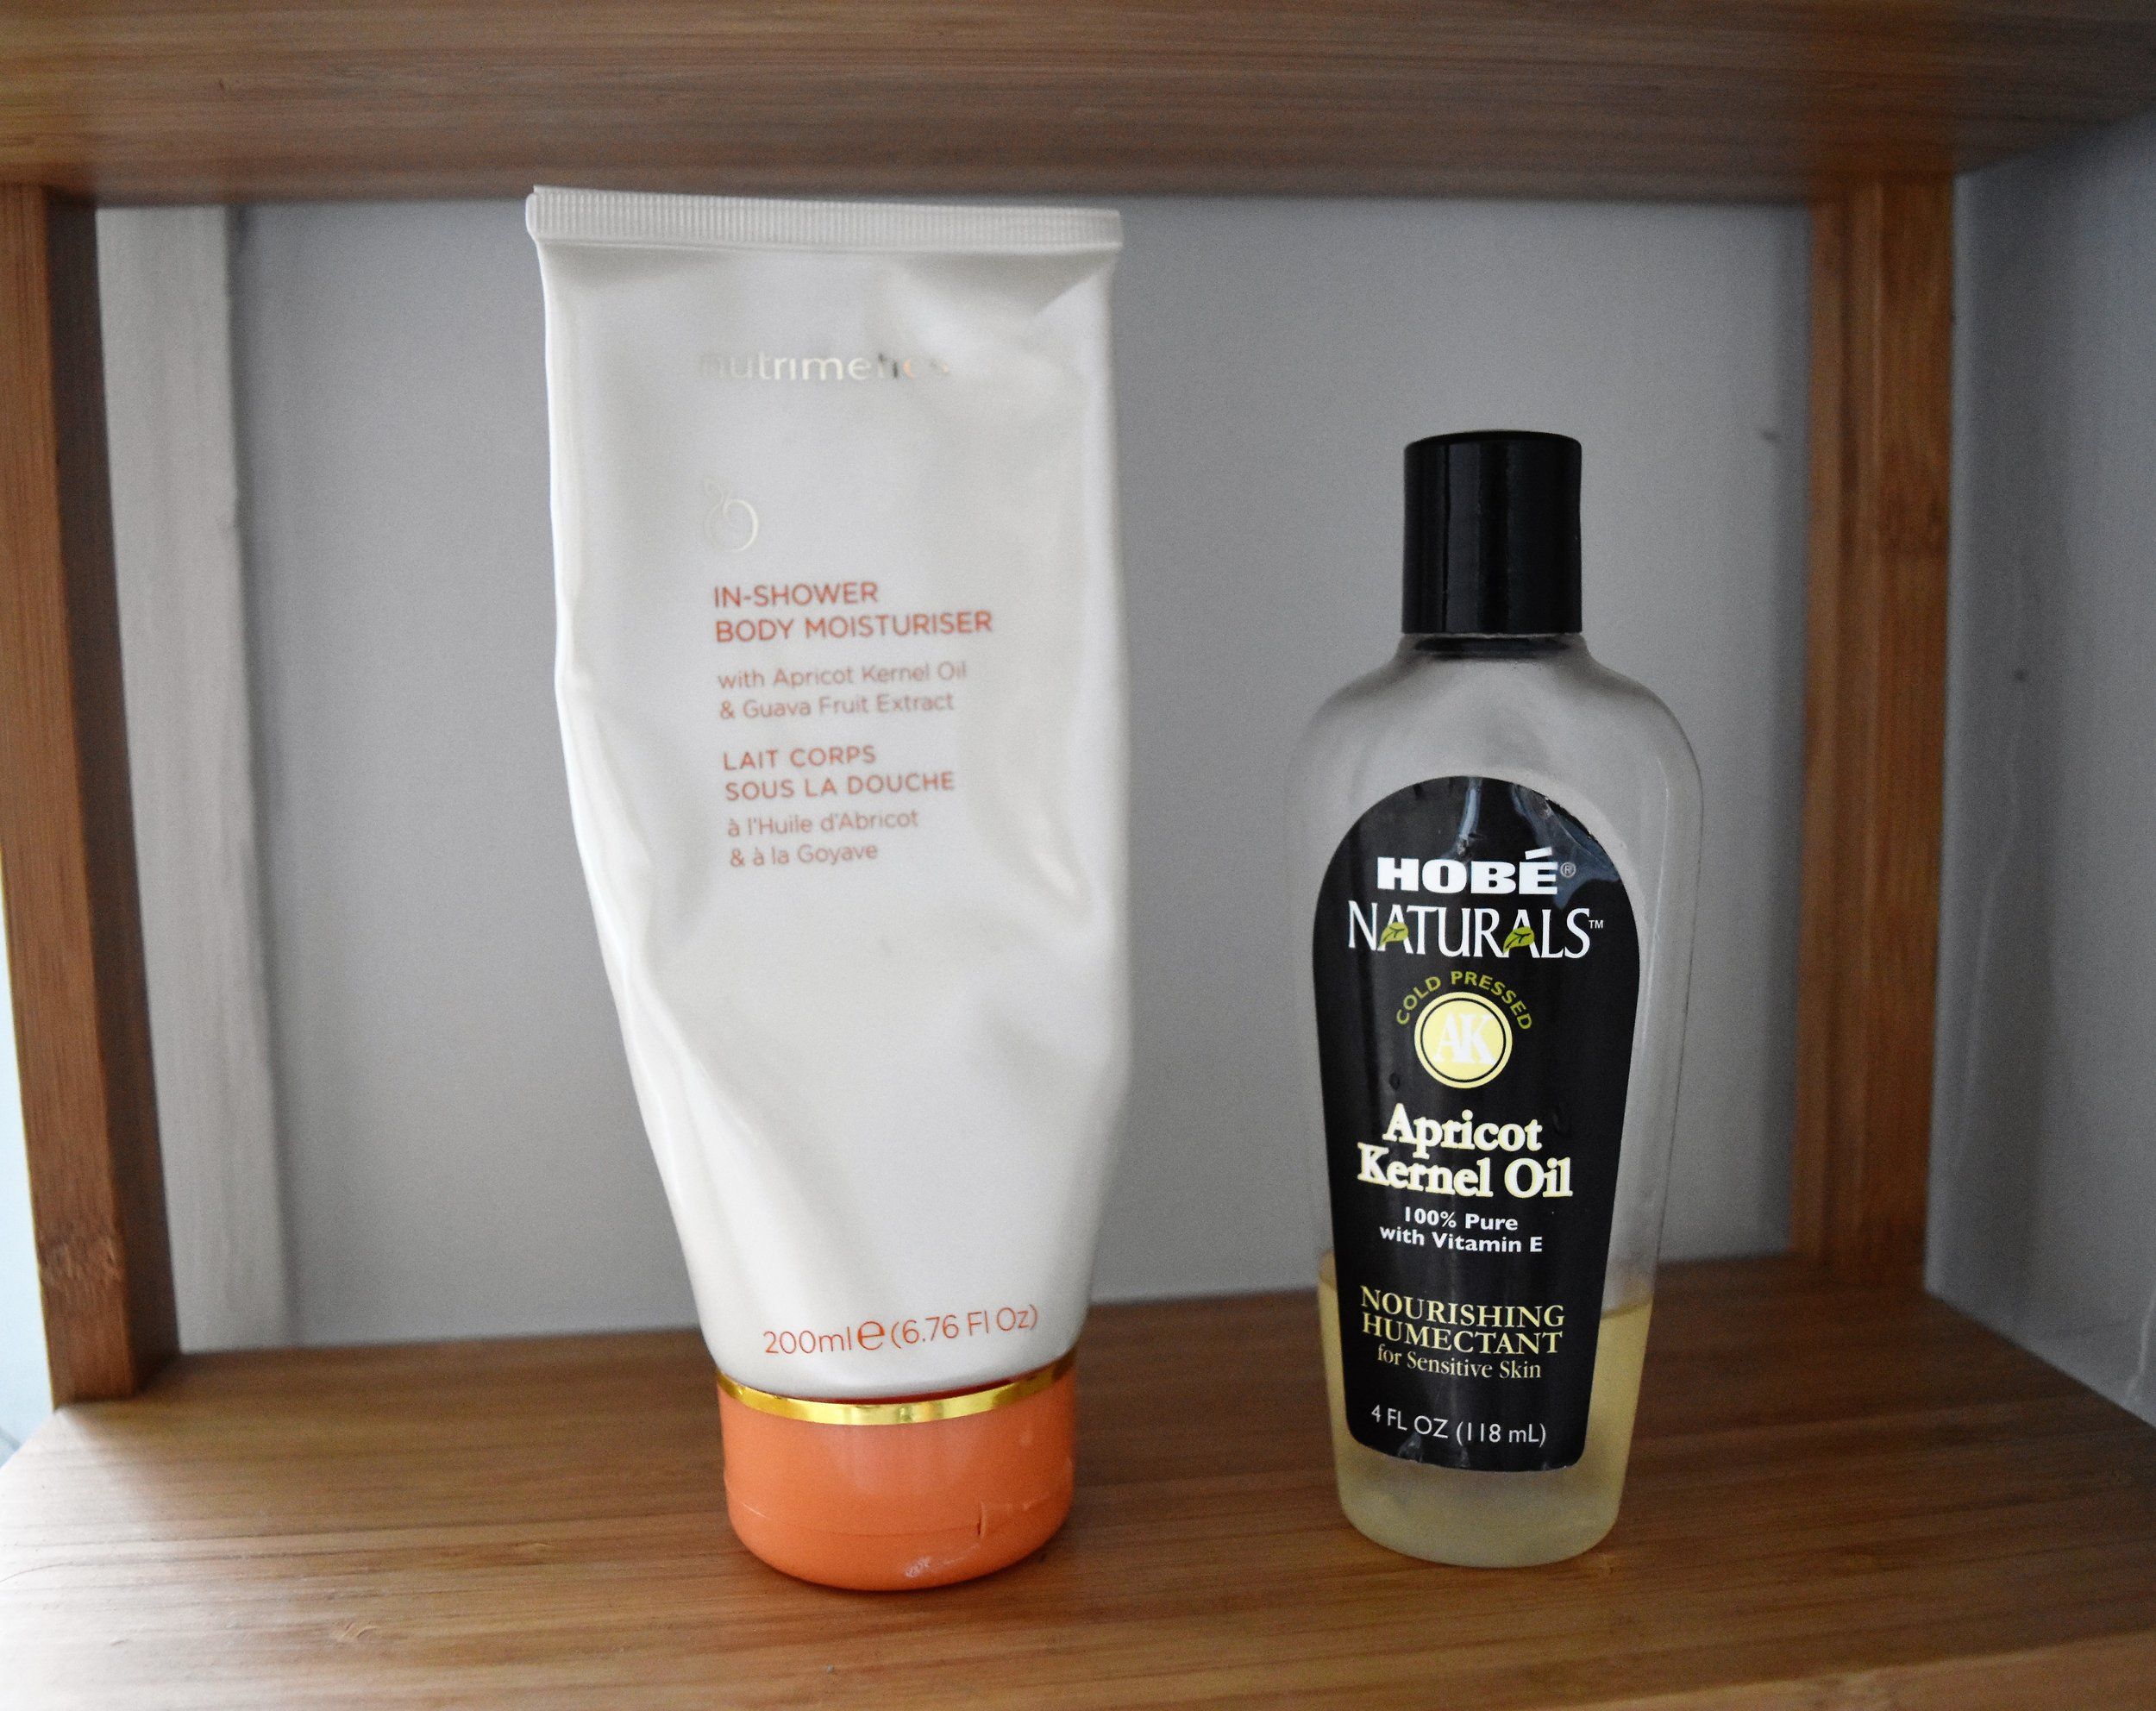 $26 for apricot kernel oil-enriched in-shower moisturiser vs $5.22 for the actual oil at iHerb